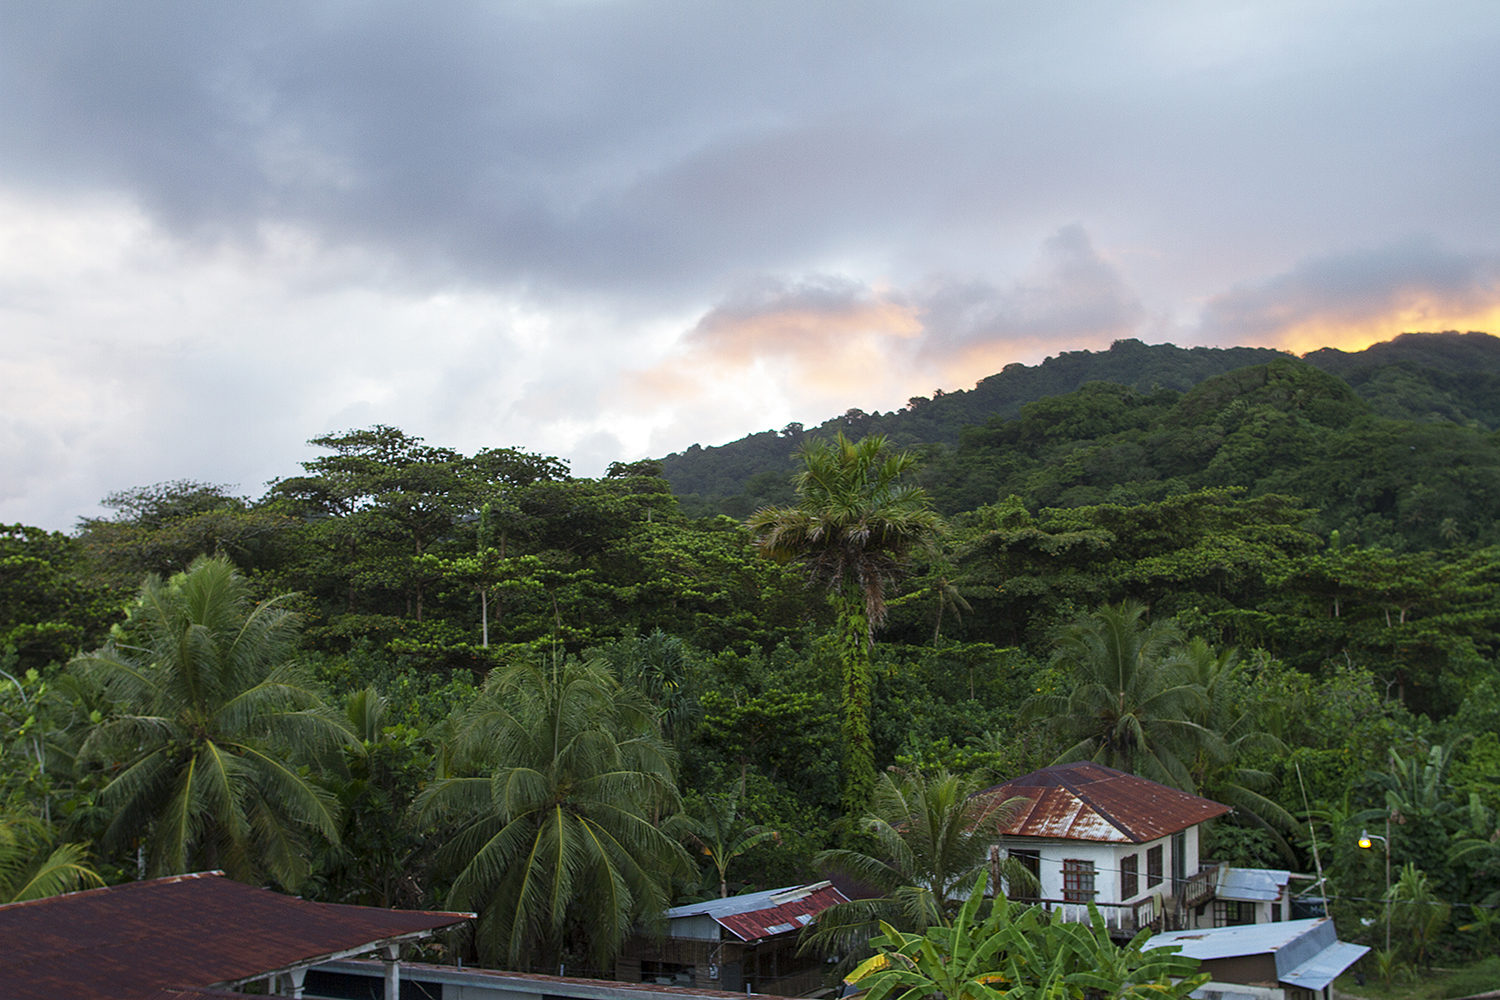 <p>A neighborhood in Malem. Micronesian has both low-lying islands and mountainous regions.</p>